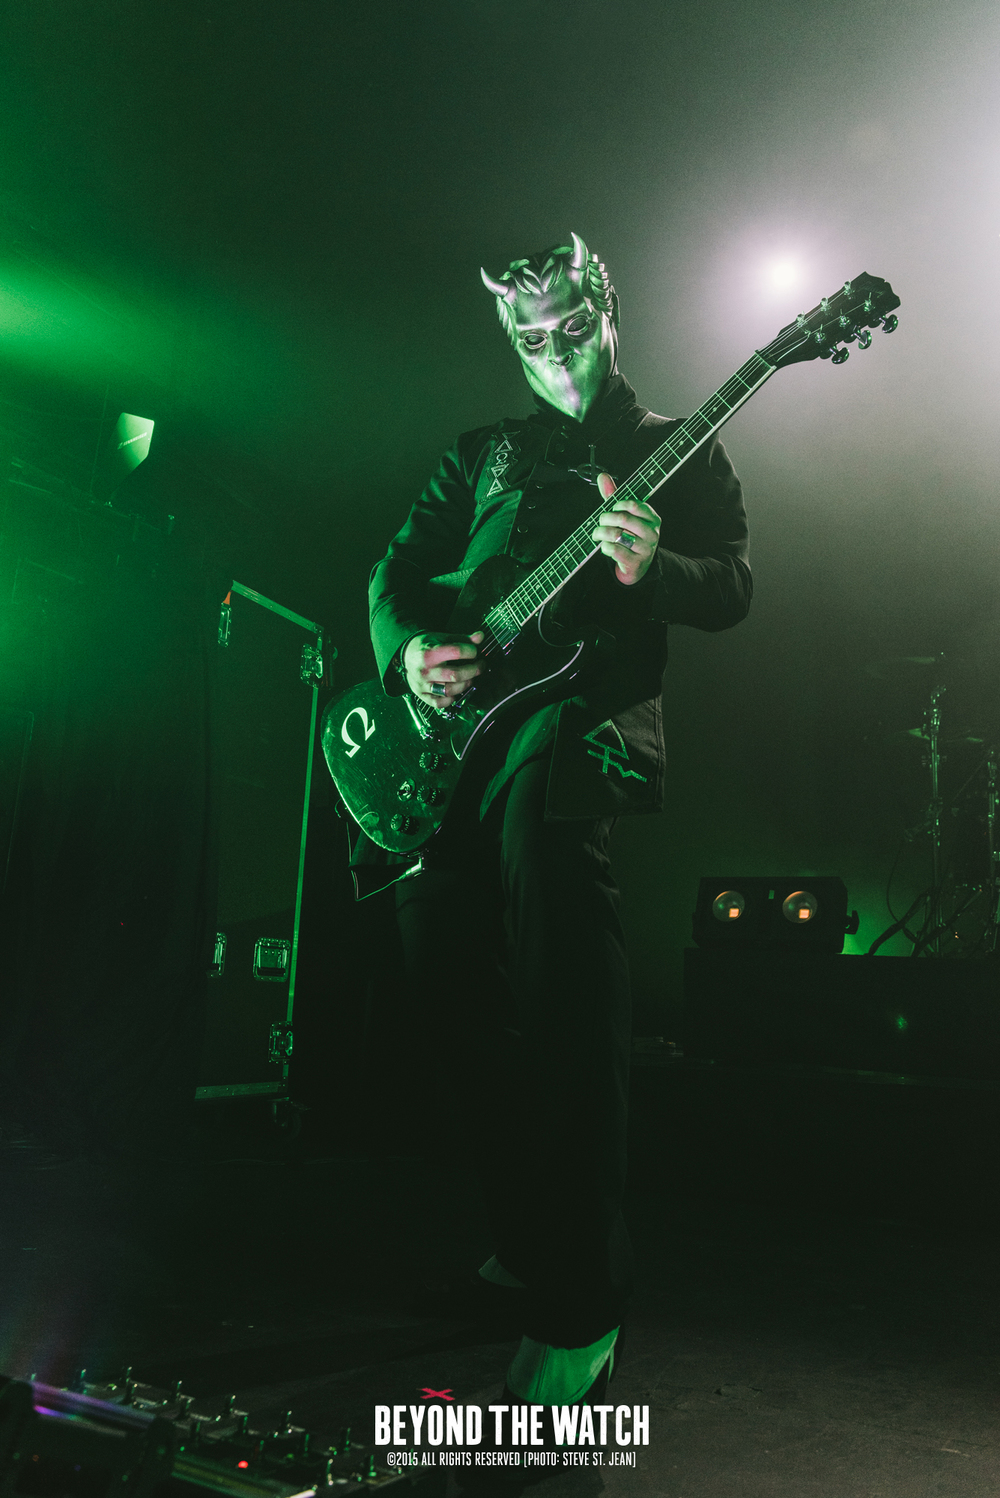 Nameless Ghoul